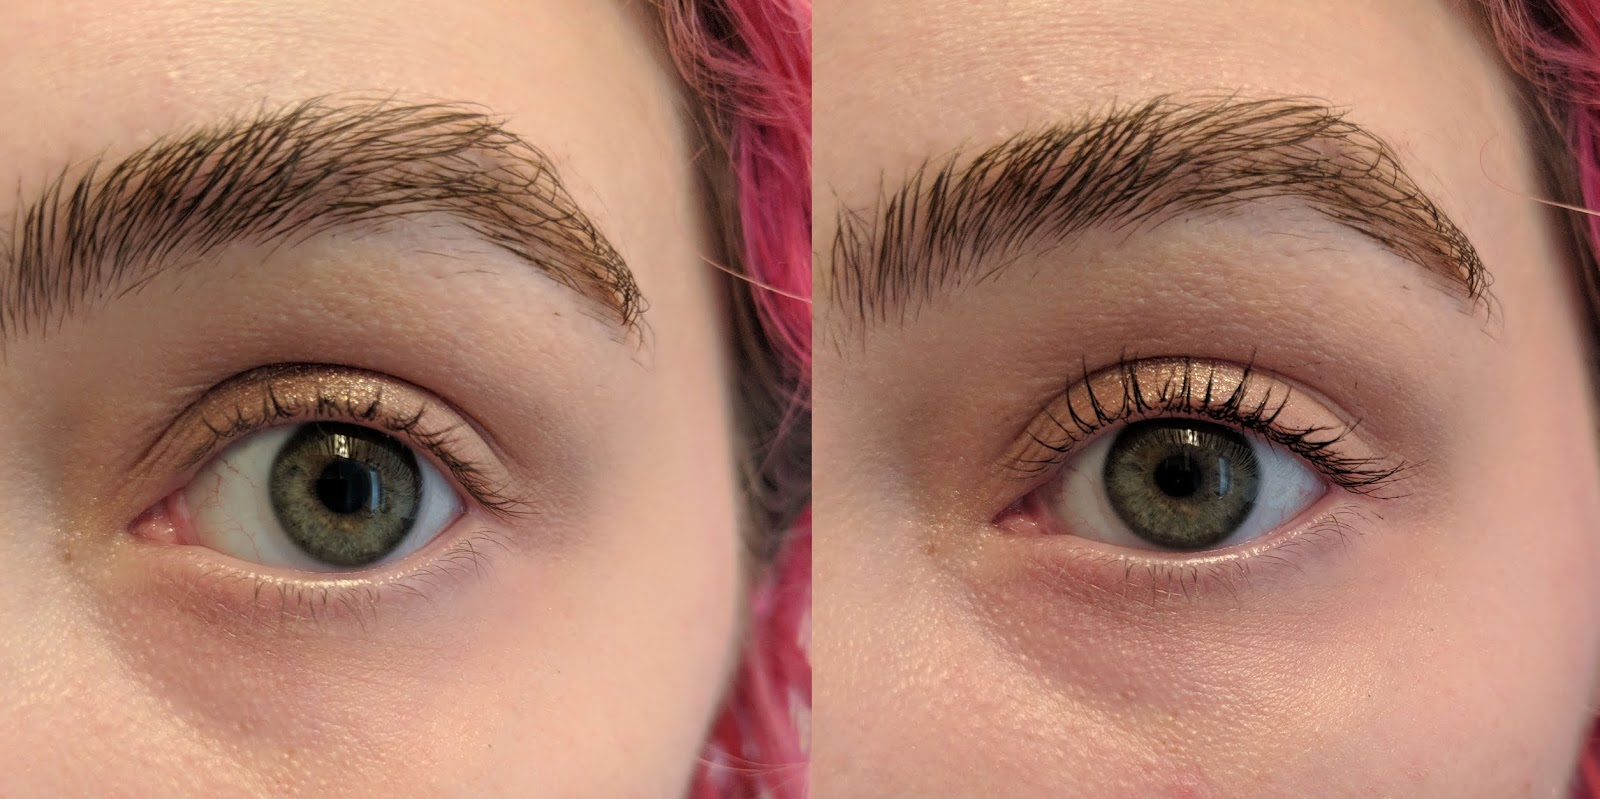 c750b8a5e94 Before and after - One coat of Glossier Lash Slick Mascara has given me  long, lifted lashes with beautiful definition.